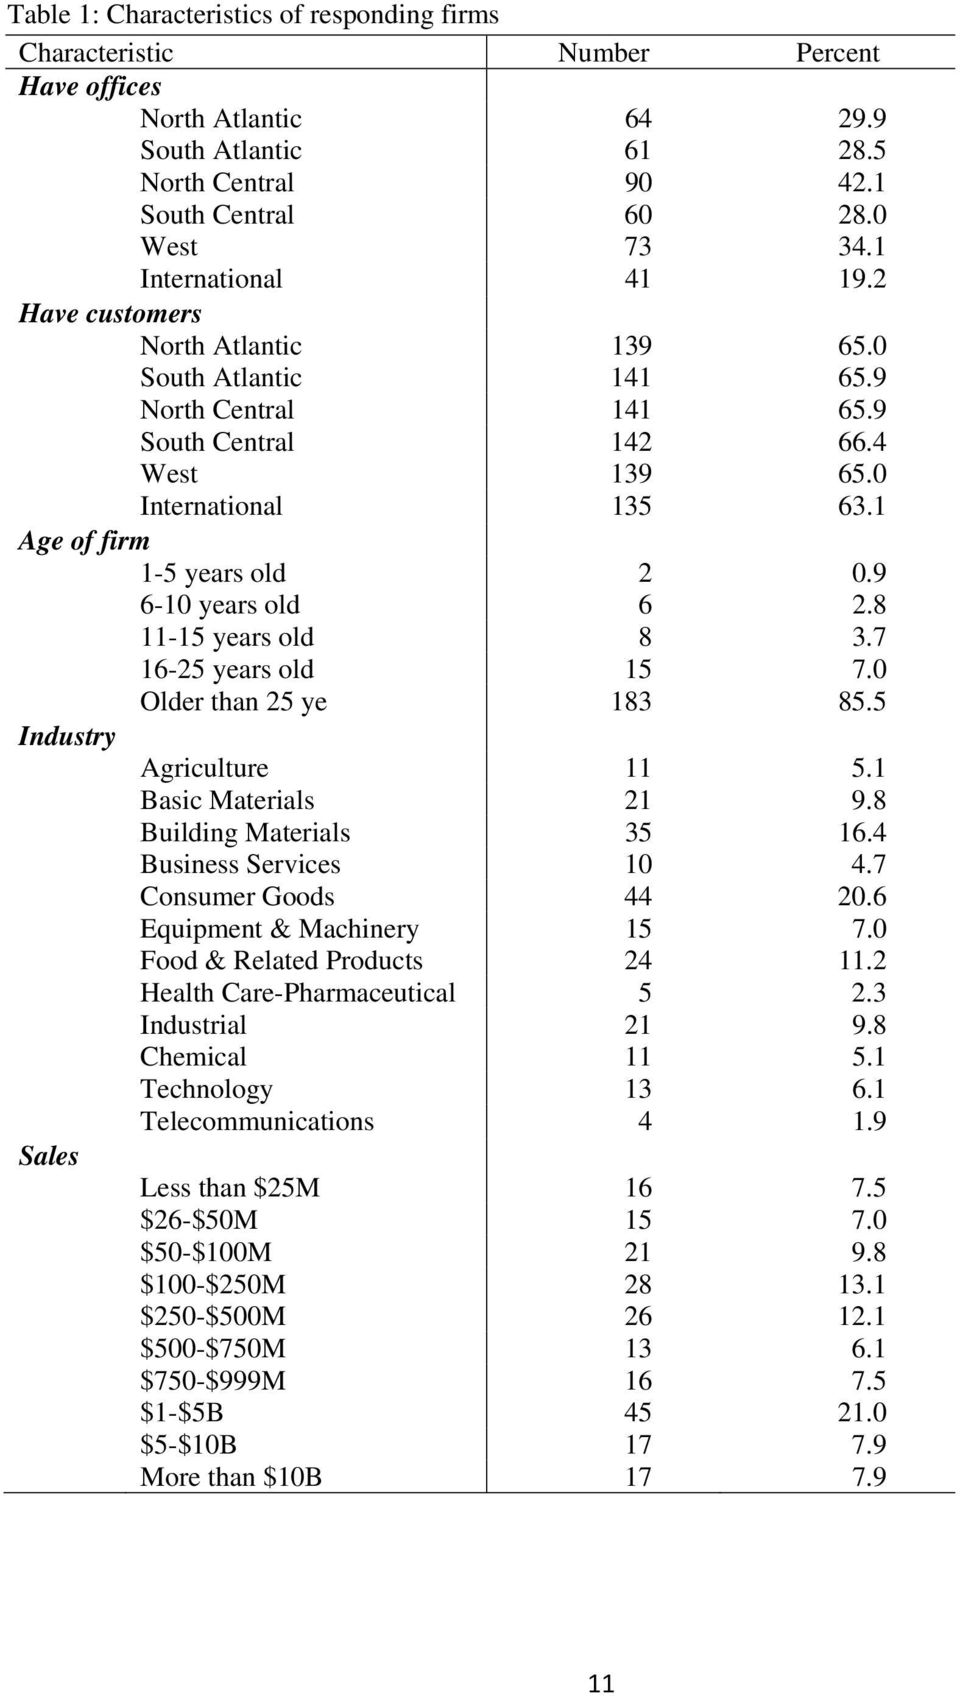 9 6-10 years old 6 2.8 11-15 years old 8 3.7 16-25 years old 15 7.0 Older than 25 ye 183 85.5 Industry Agriculture 11 5.1 Basic Materials 21 9.8 Building Materials 35 16.4 Business Services 10 4.